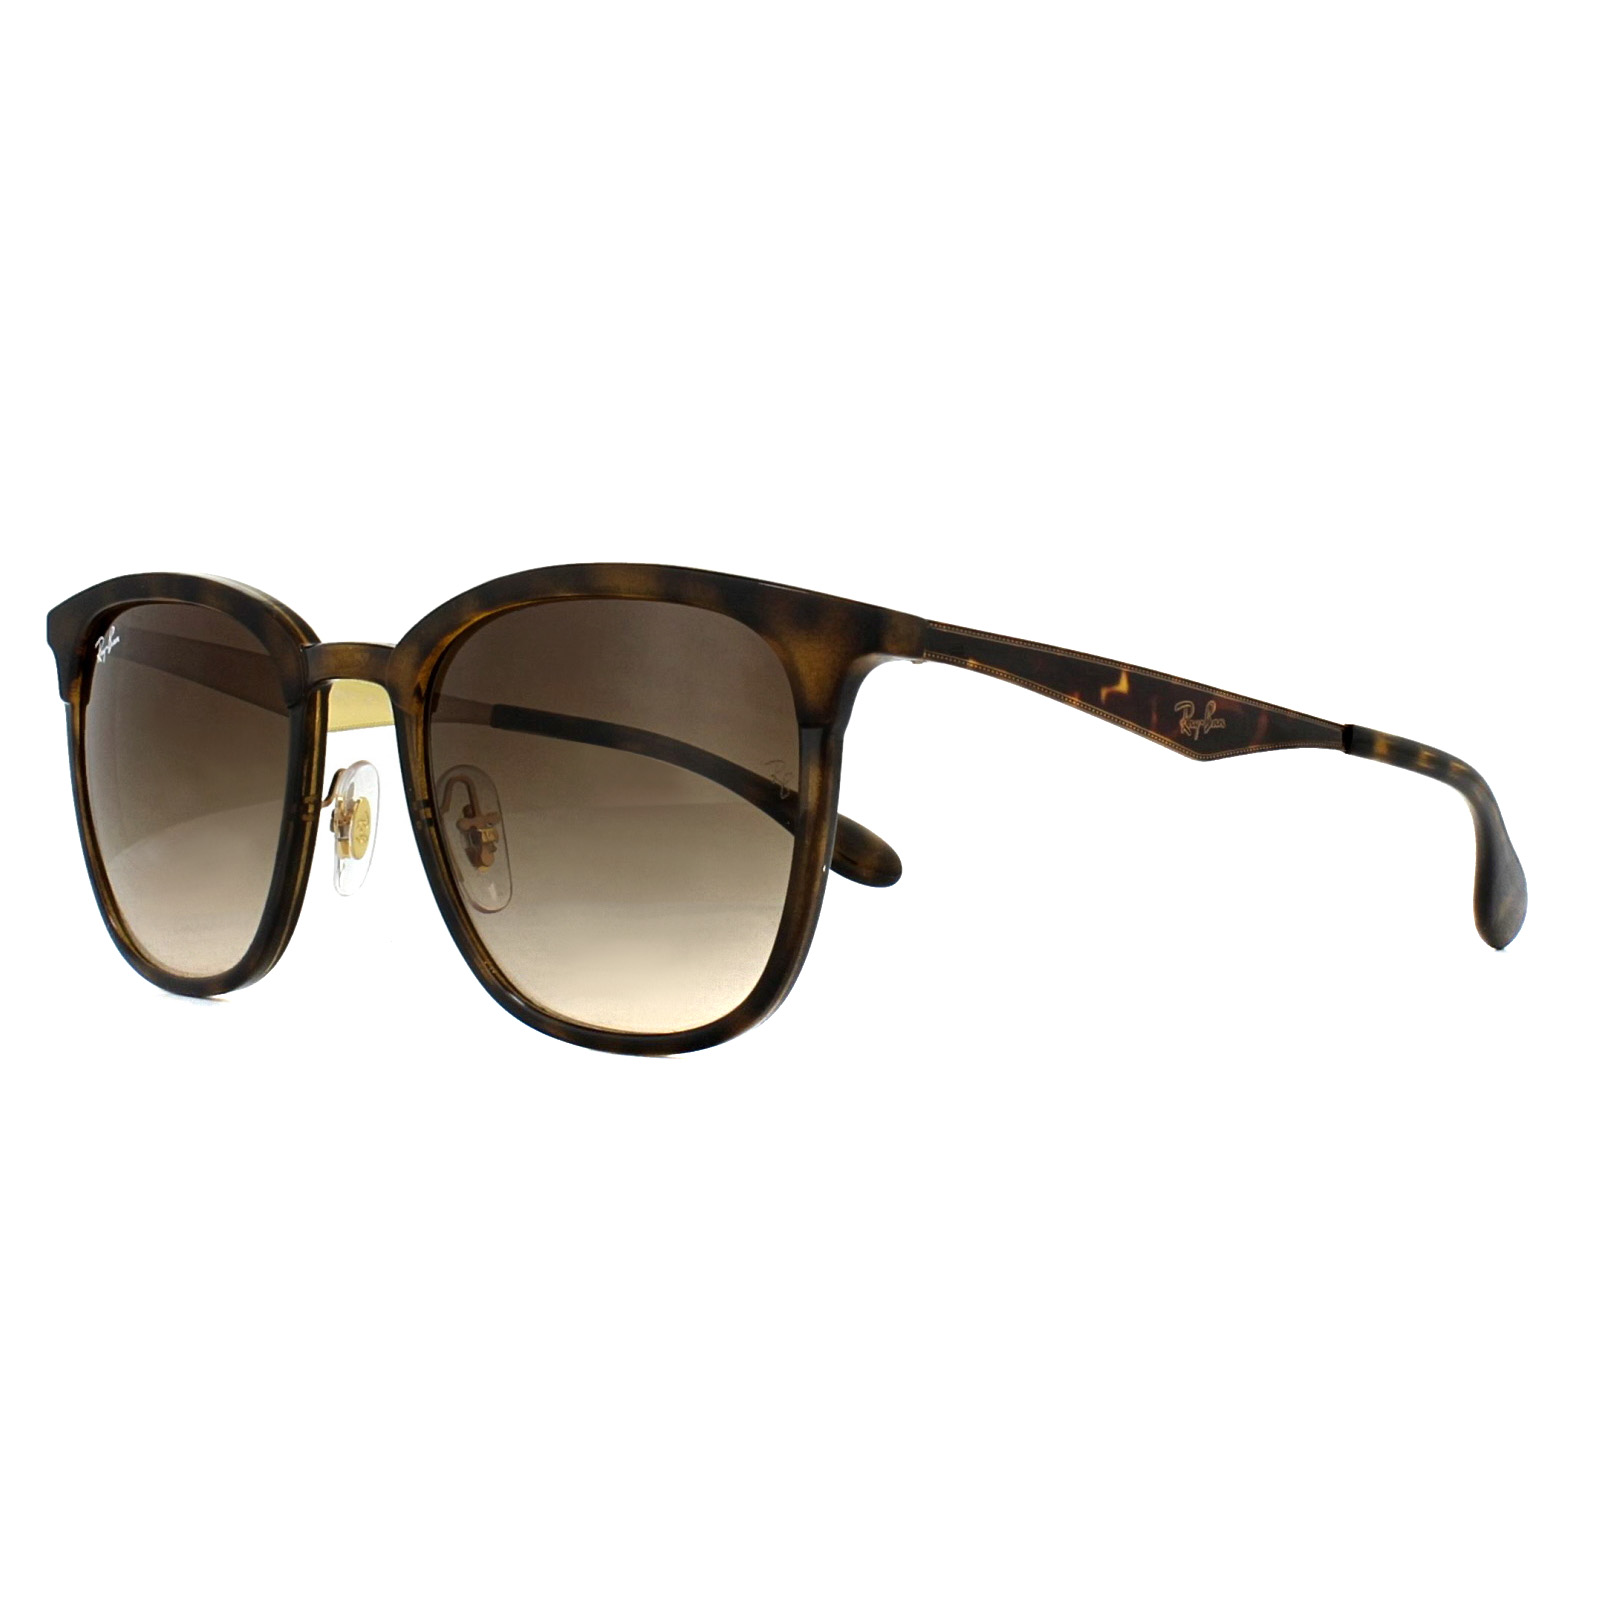 5e093596b Sentinel Ray-Ban Sunglasses RB4278 628313 Tortoise Gold Brown Gradient